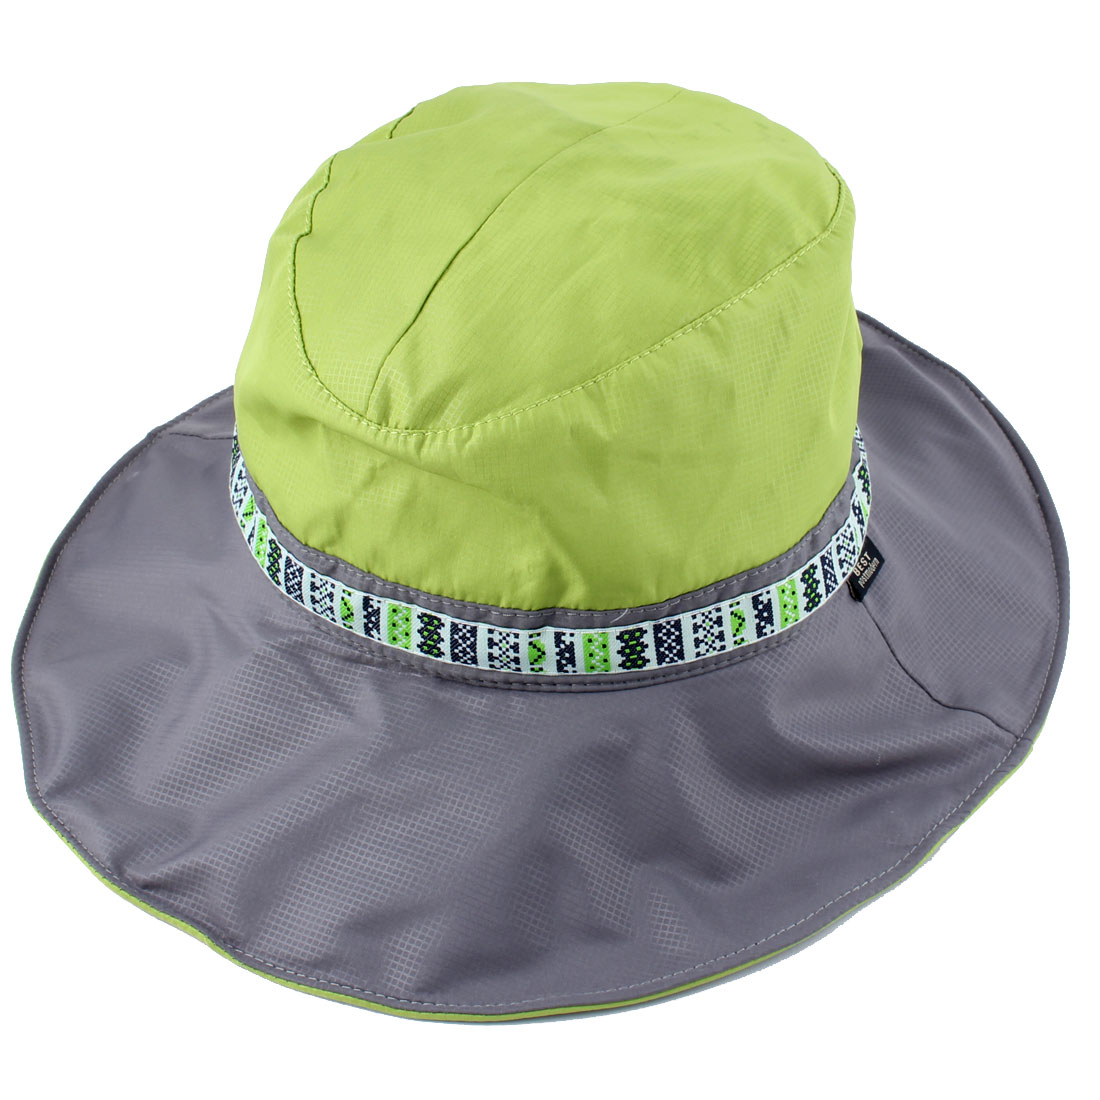 Fisherman Outdoor Fishing Travel Climbing Cycling Adjustable National Style Strap Wide Brim Floppy Cap Bucket Sun Hat Green